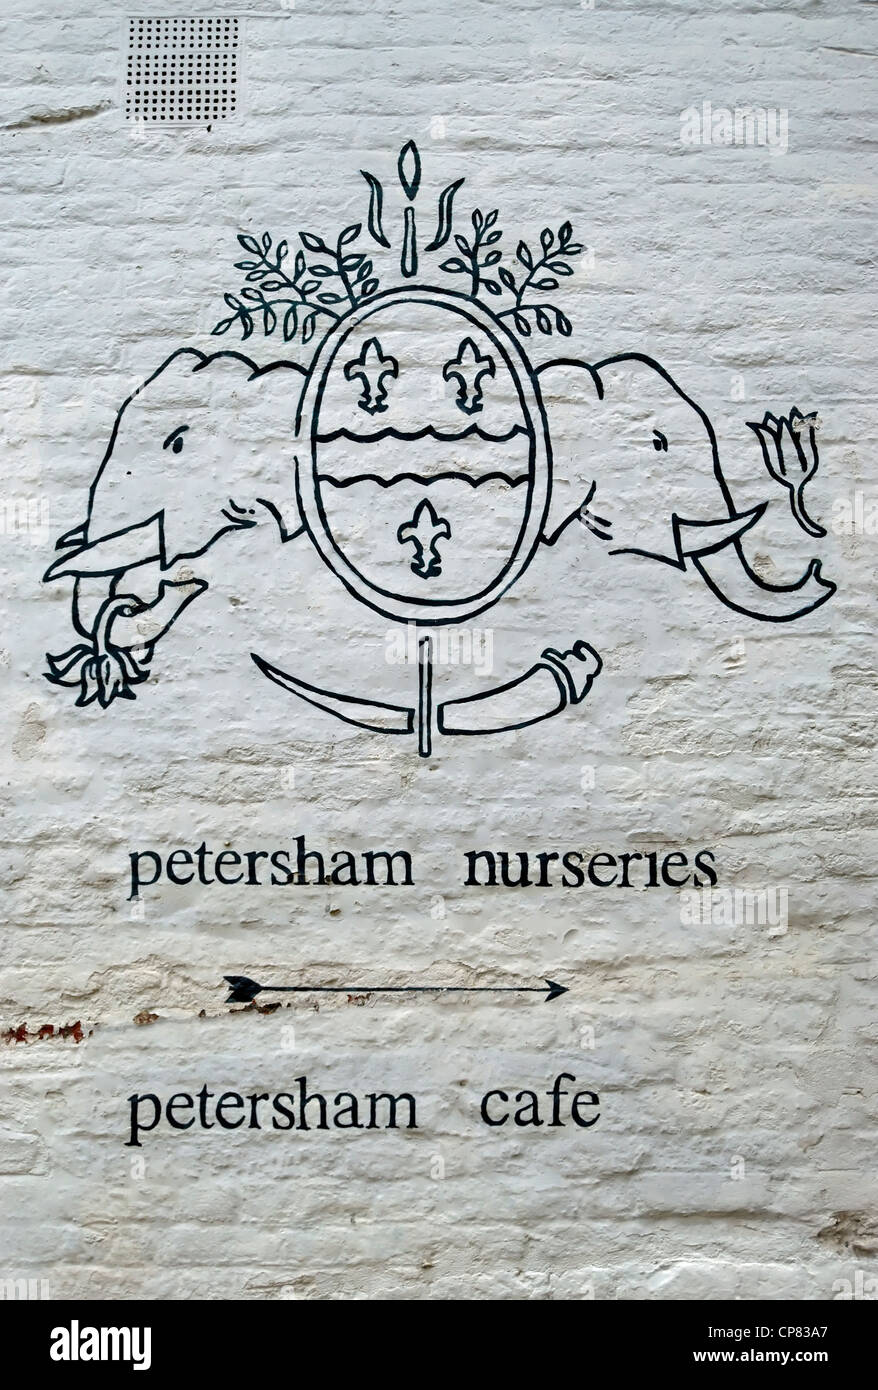 white wall with hand drawn crest and directions for petersham nurseries and petersham cafe, petersham, surrey, england Stock Photo